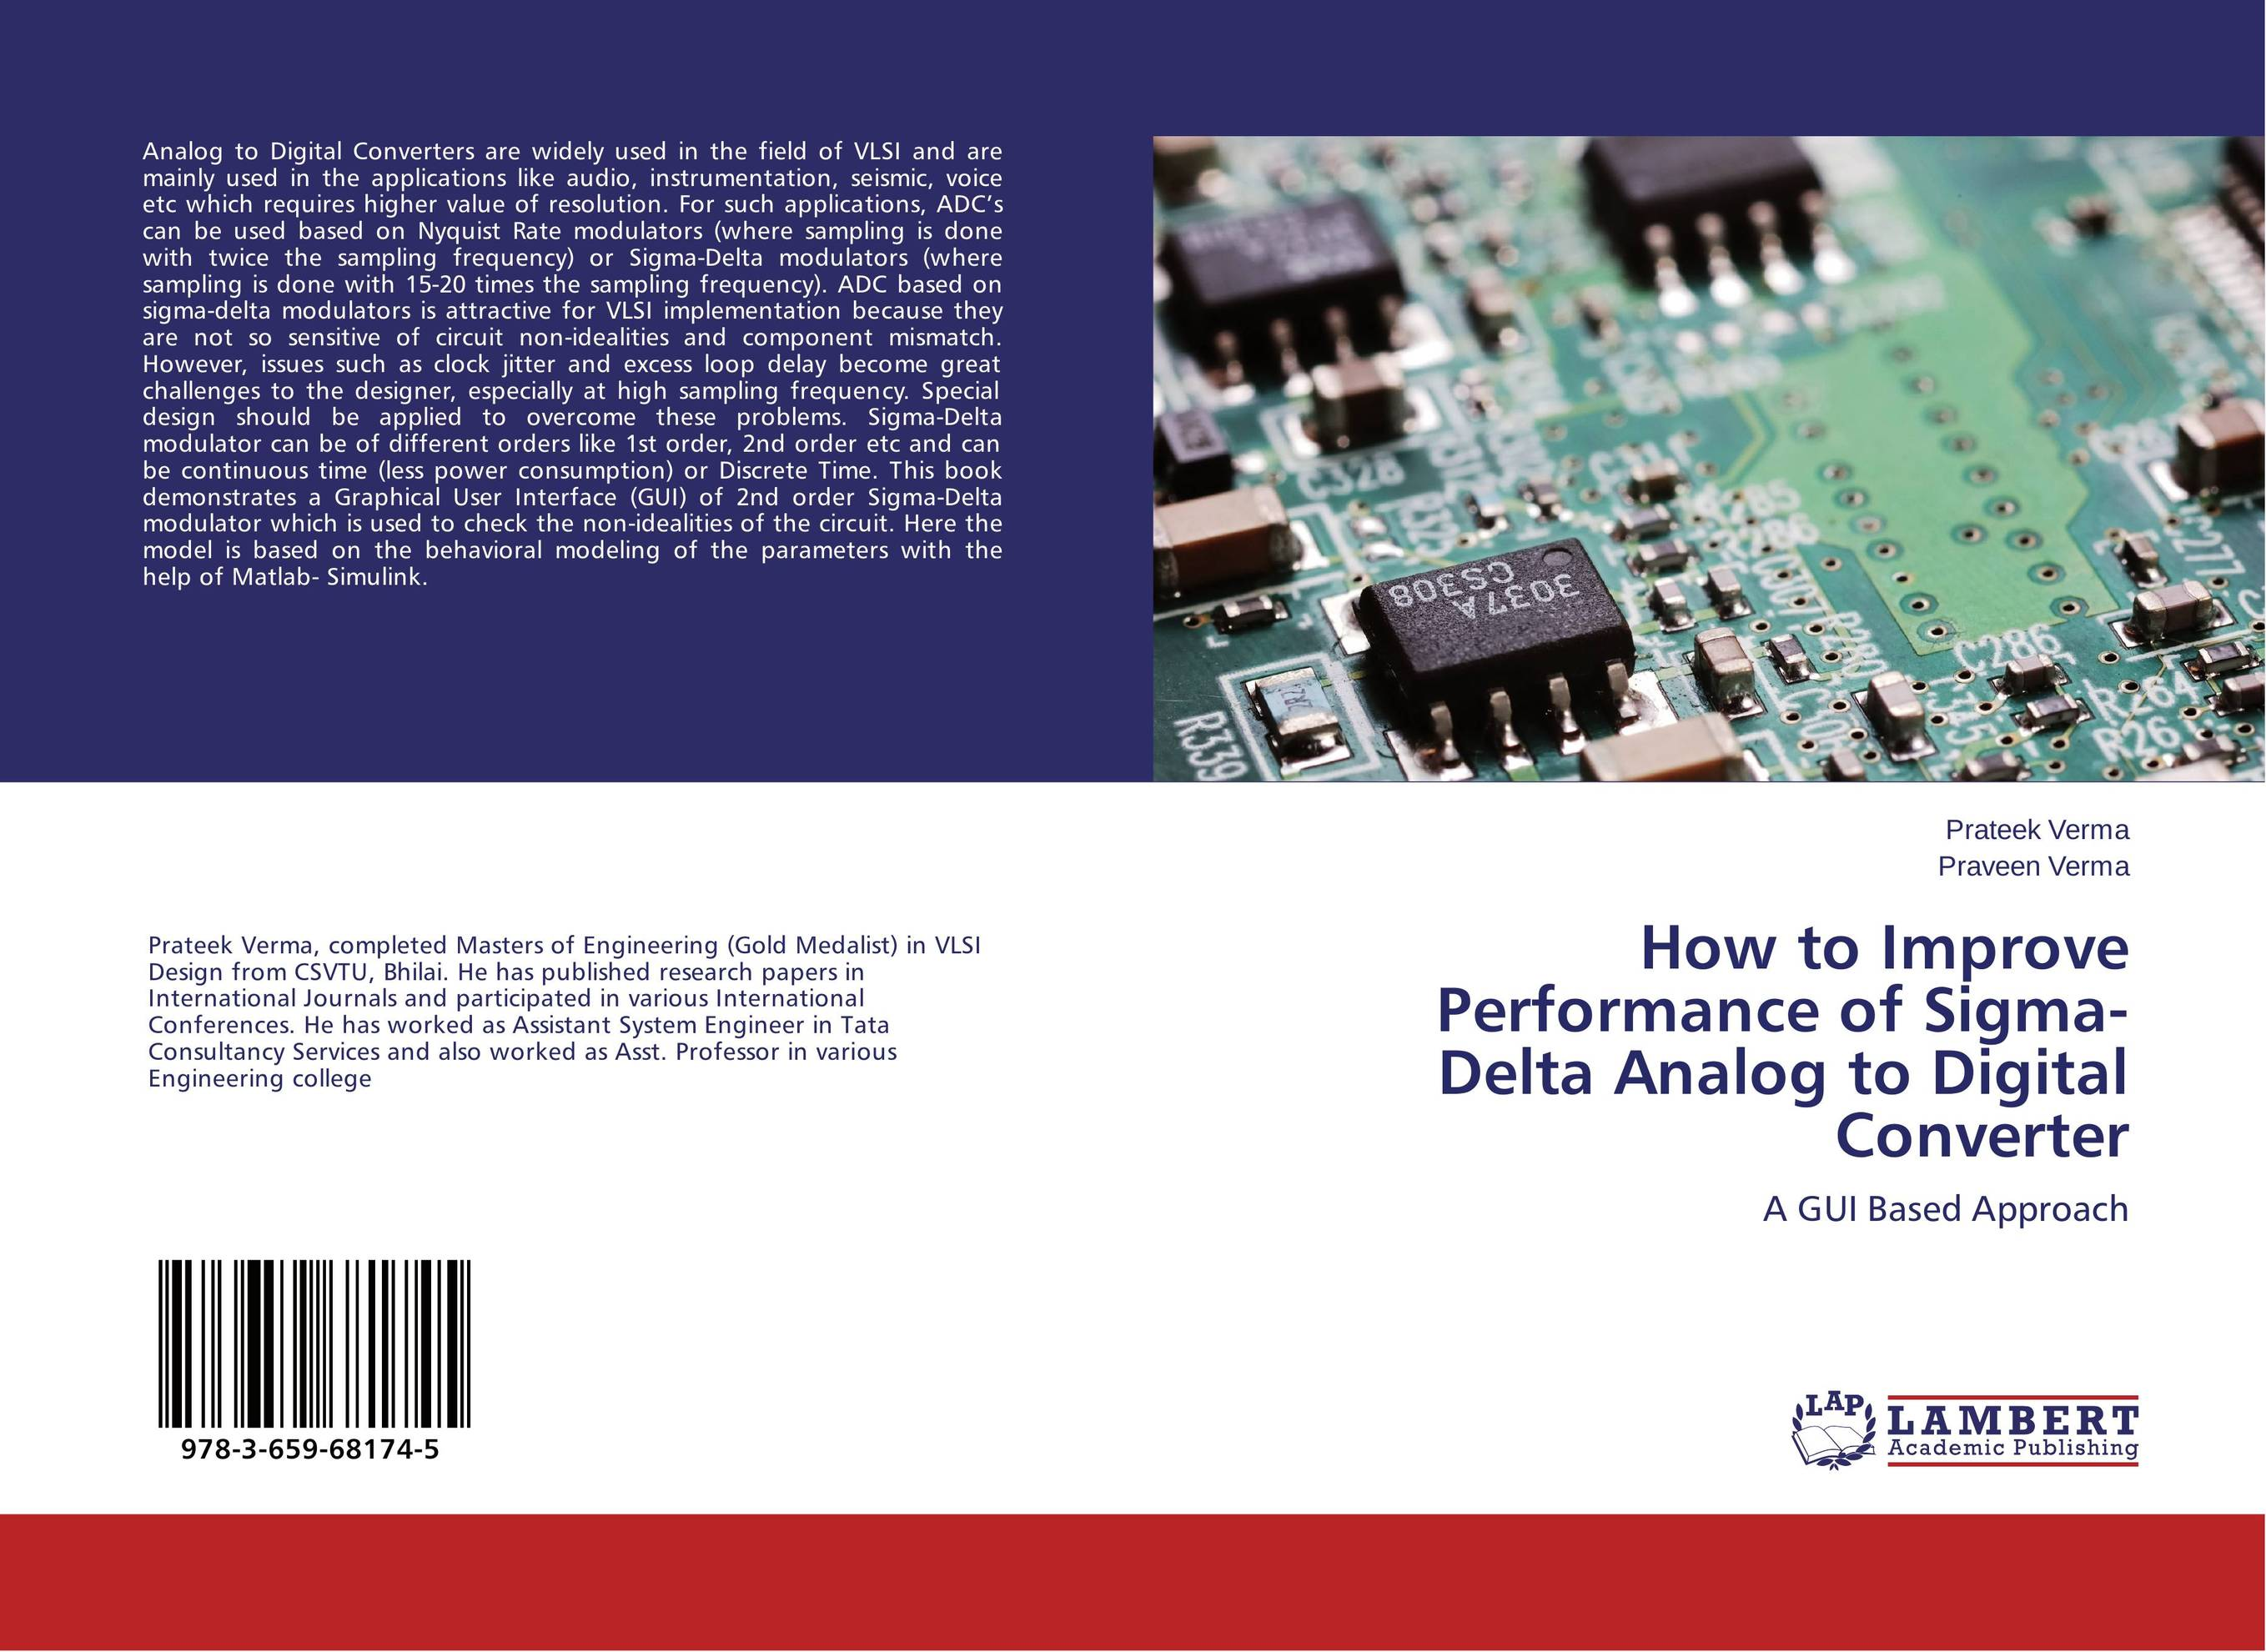 How to Improve Performance of Sigma- Delta Analog to Digital Converter efficient importance sampling in applied econometrics